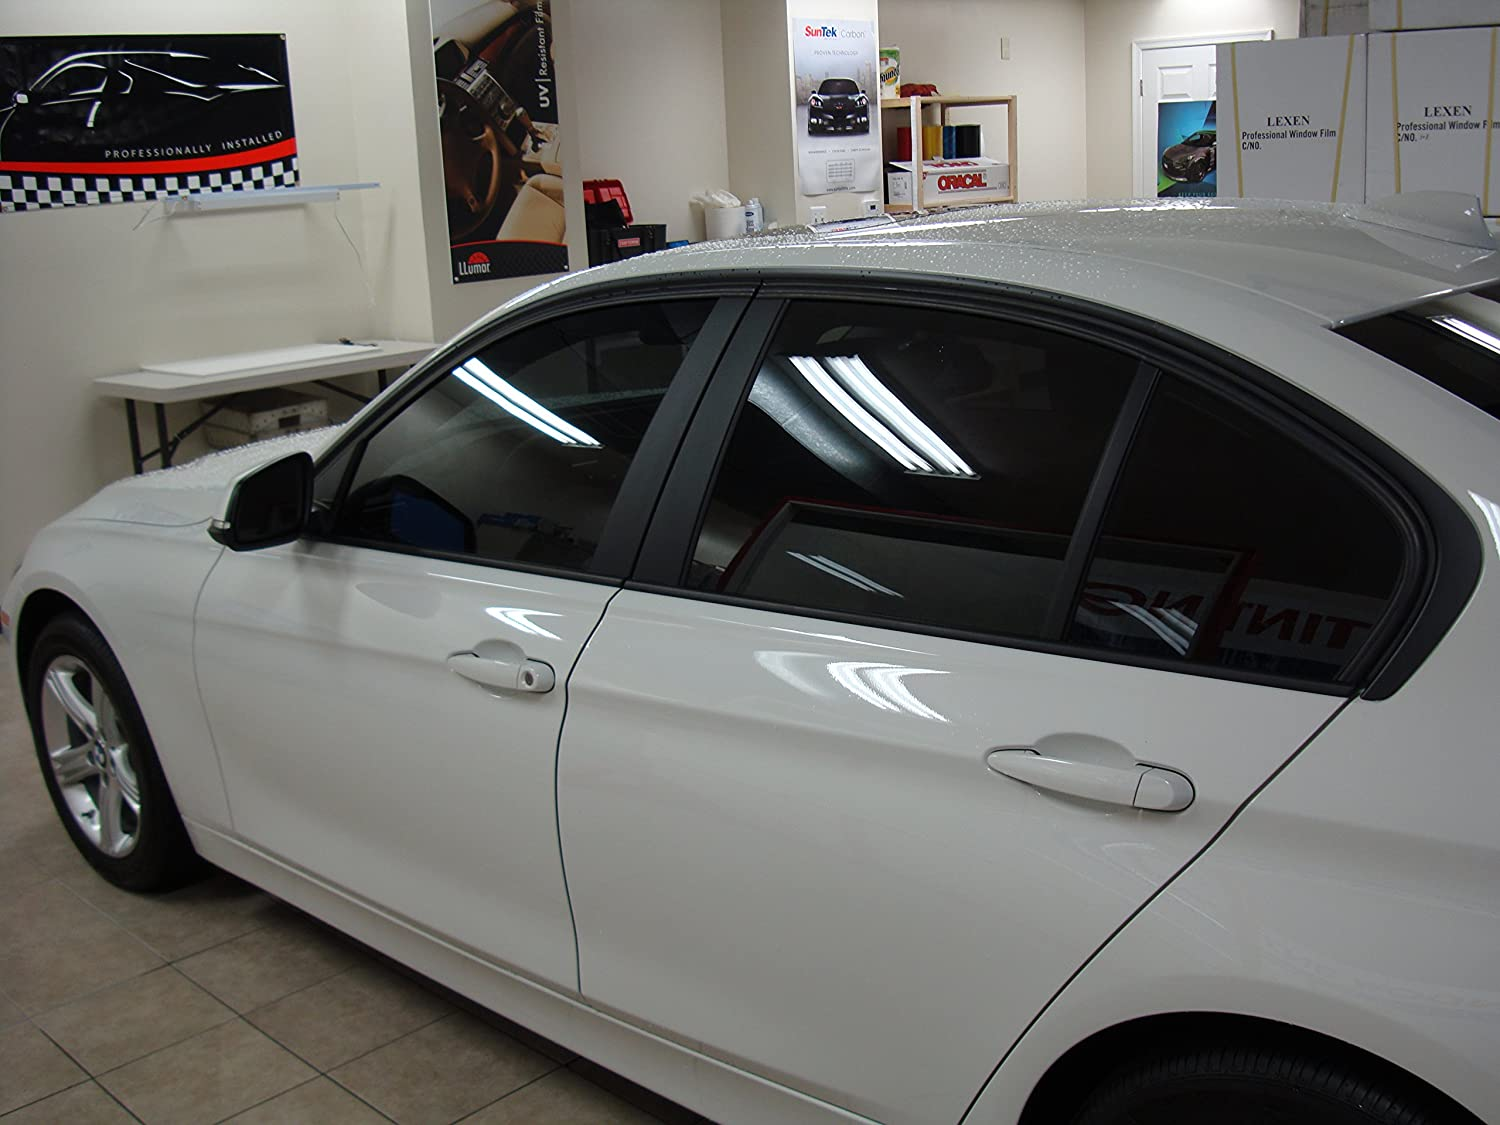 What Are The Best Window Tint Films To Buy For Automotive